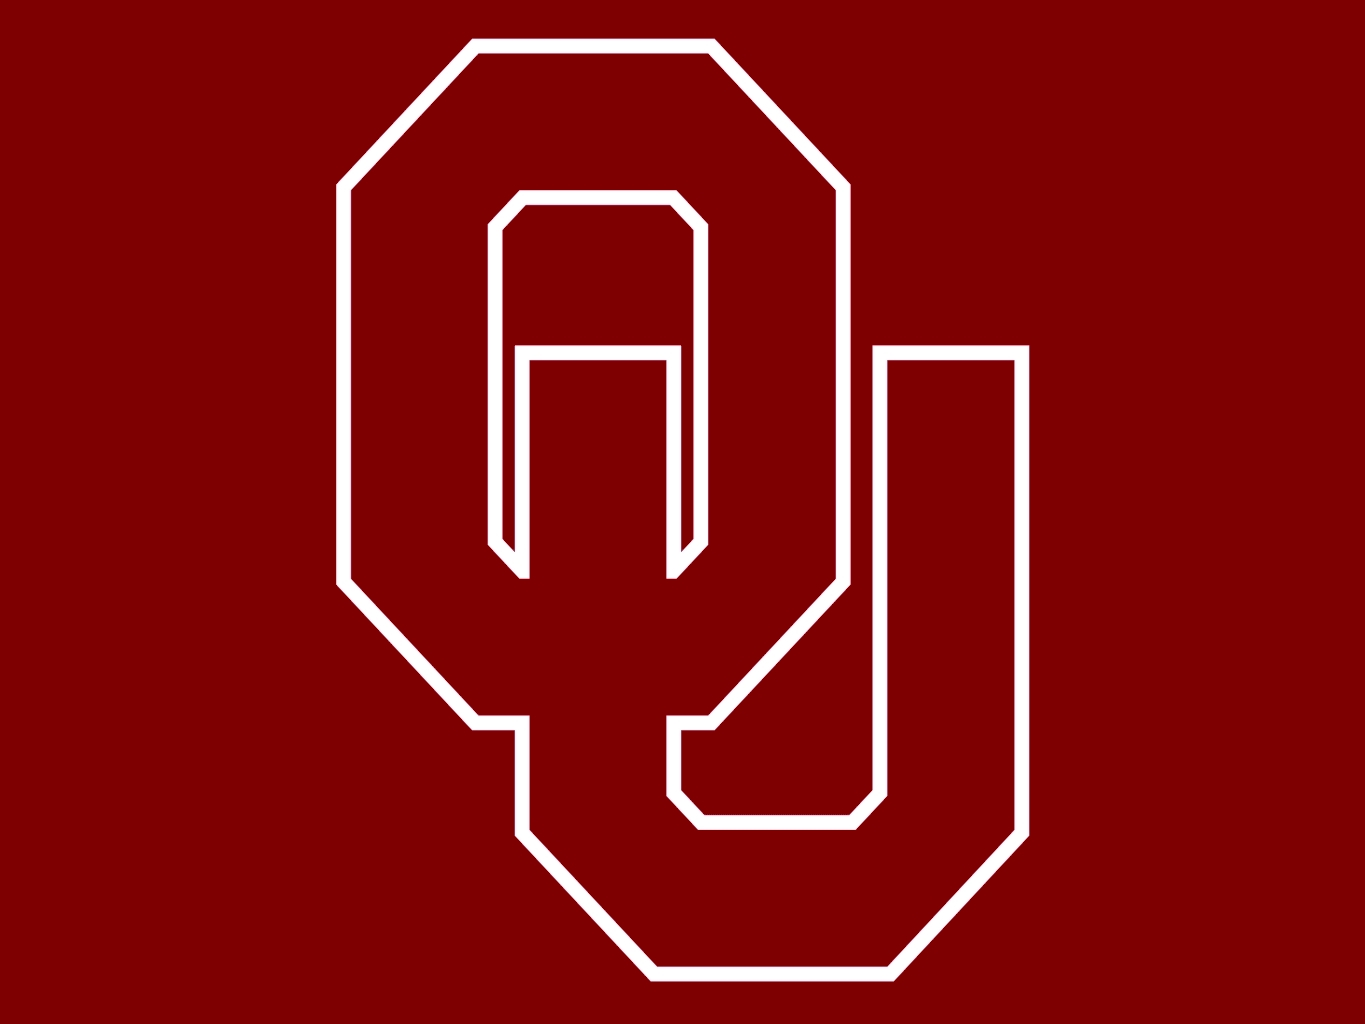 air force logo clipart. oklahoma sooners wagon clipart.